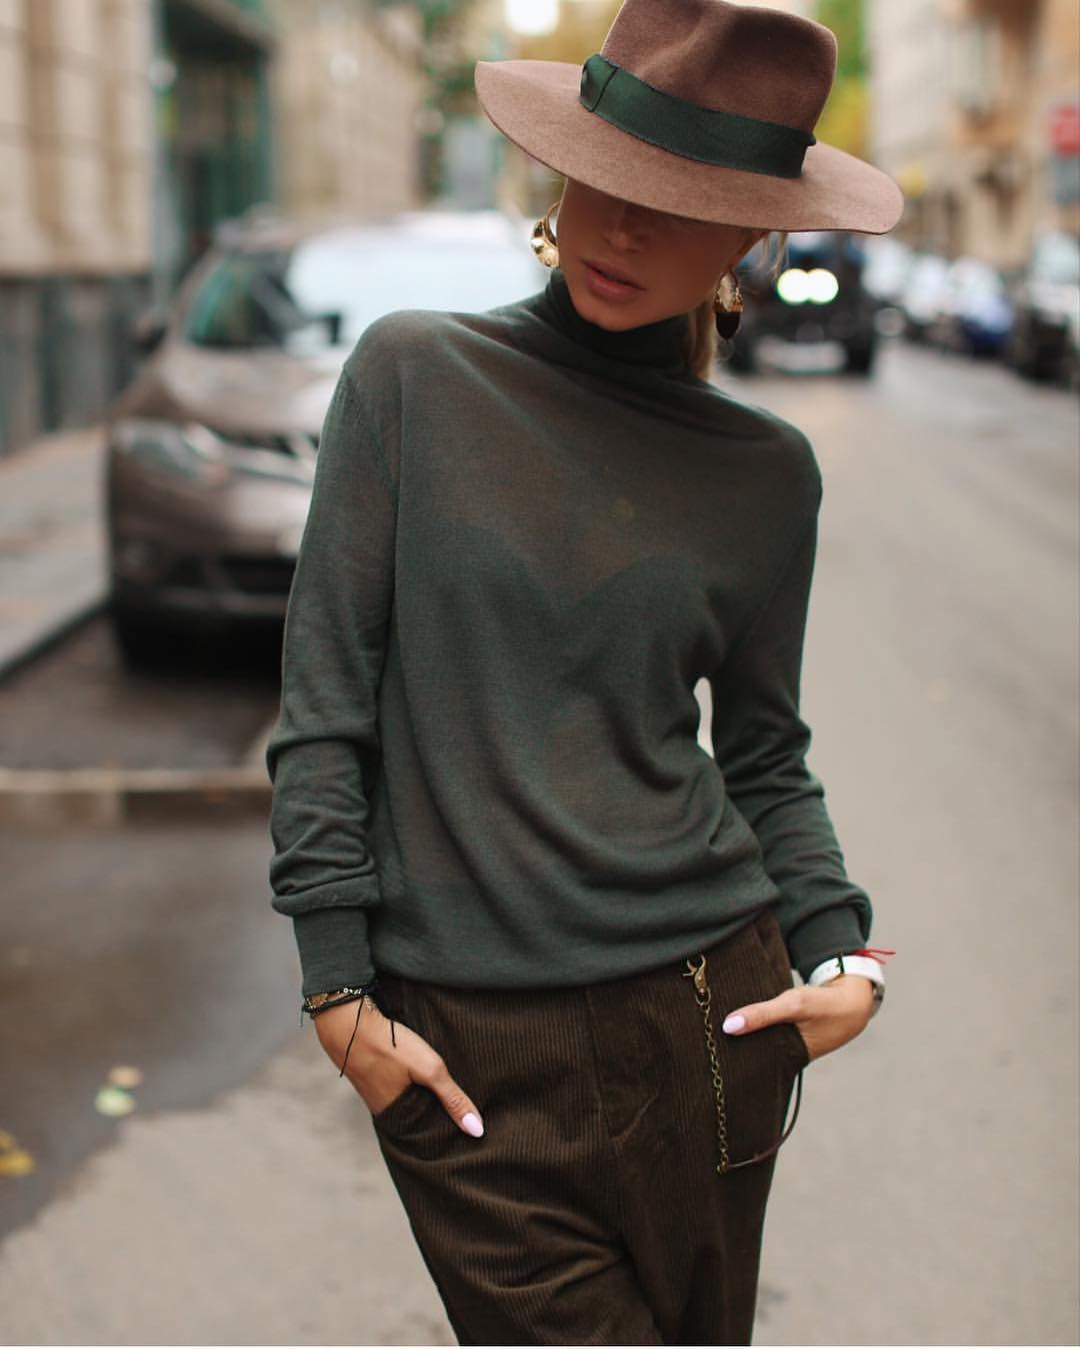 Emerald Green Turtleneck Sweater And Brown Velour Pants With Fedora Hat 2019